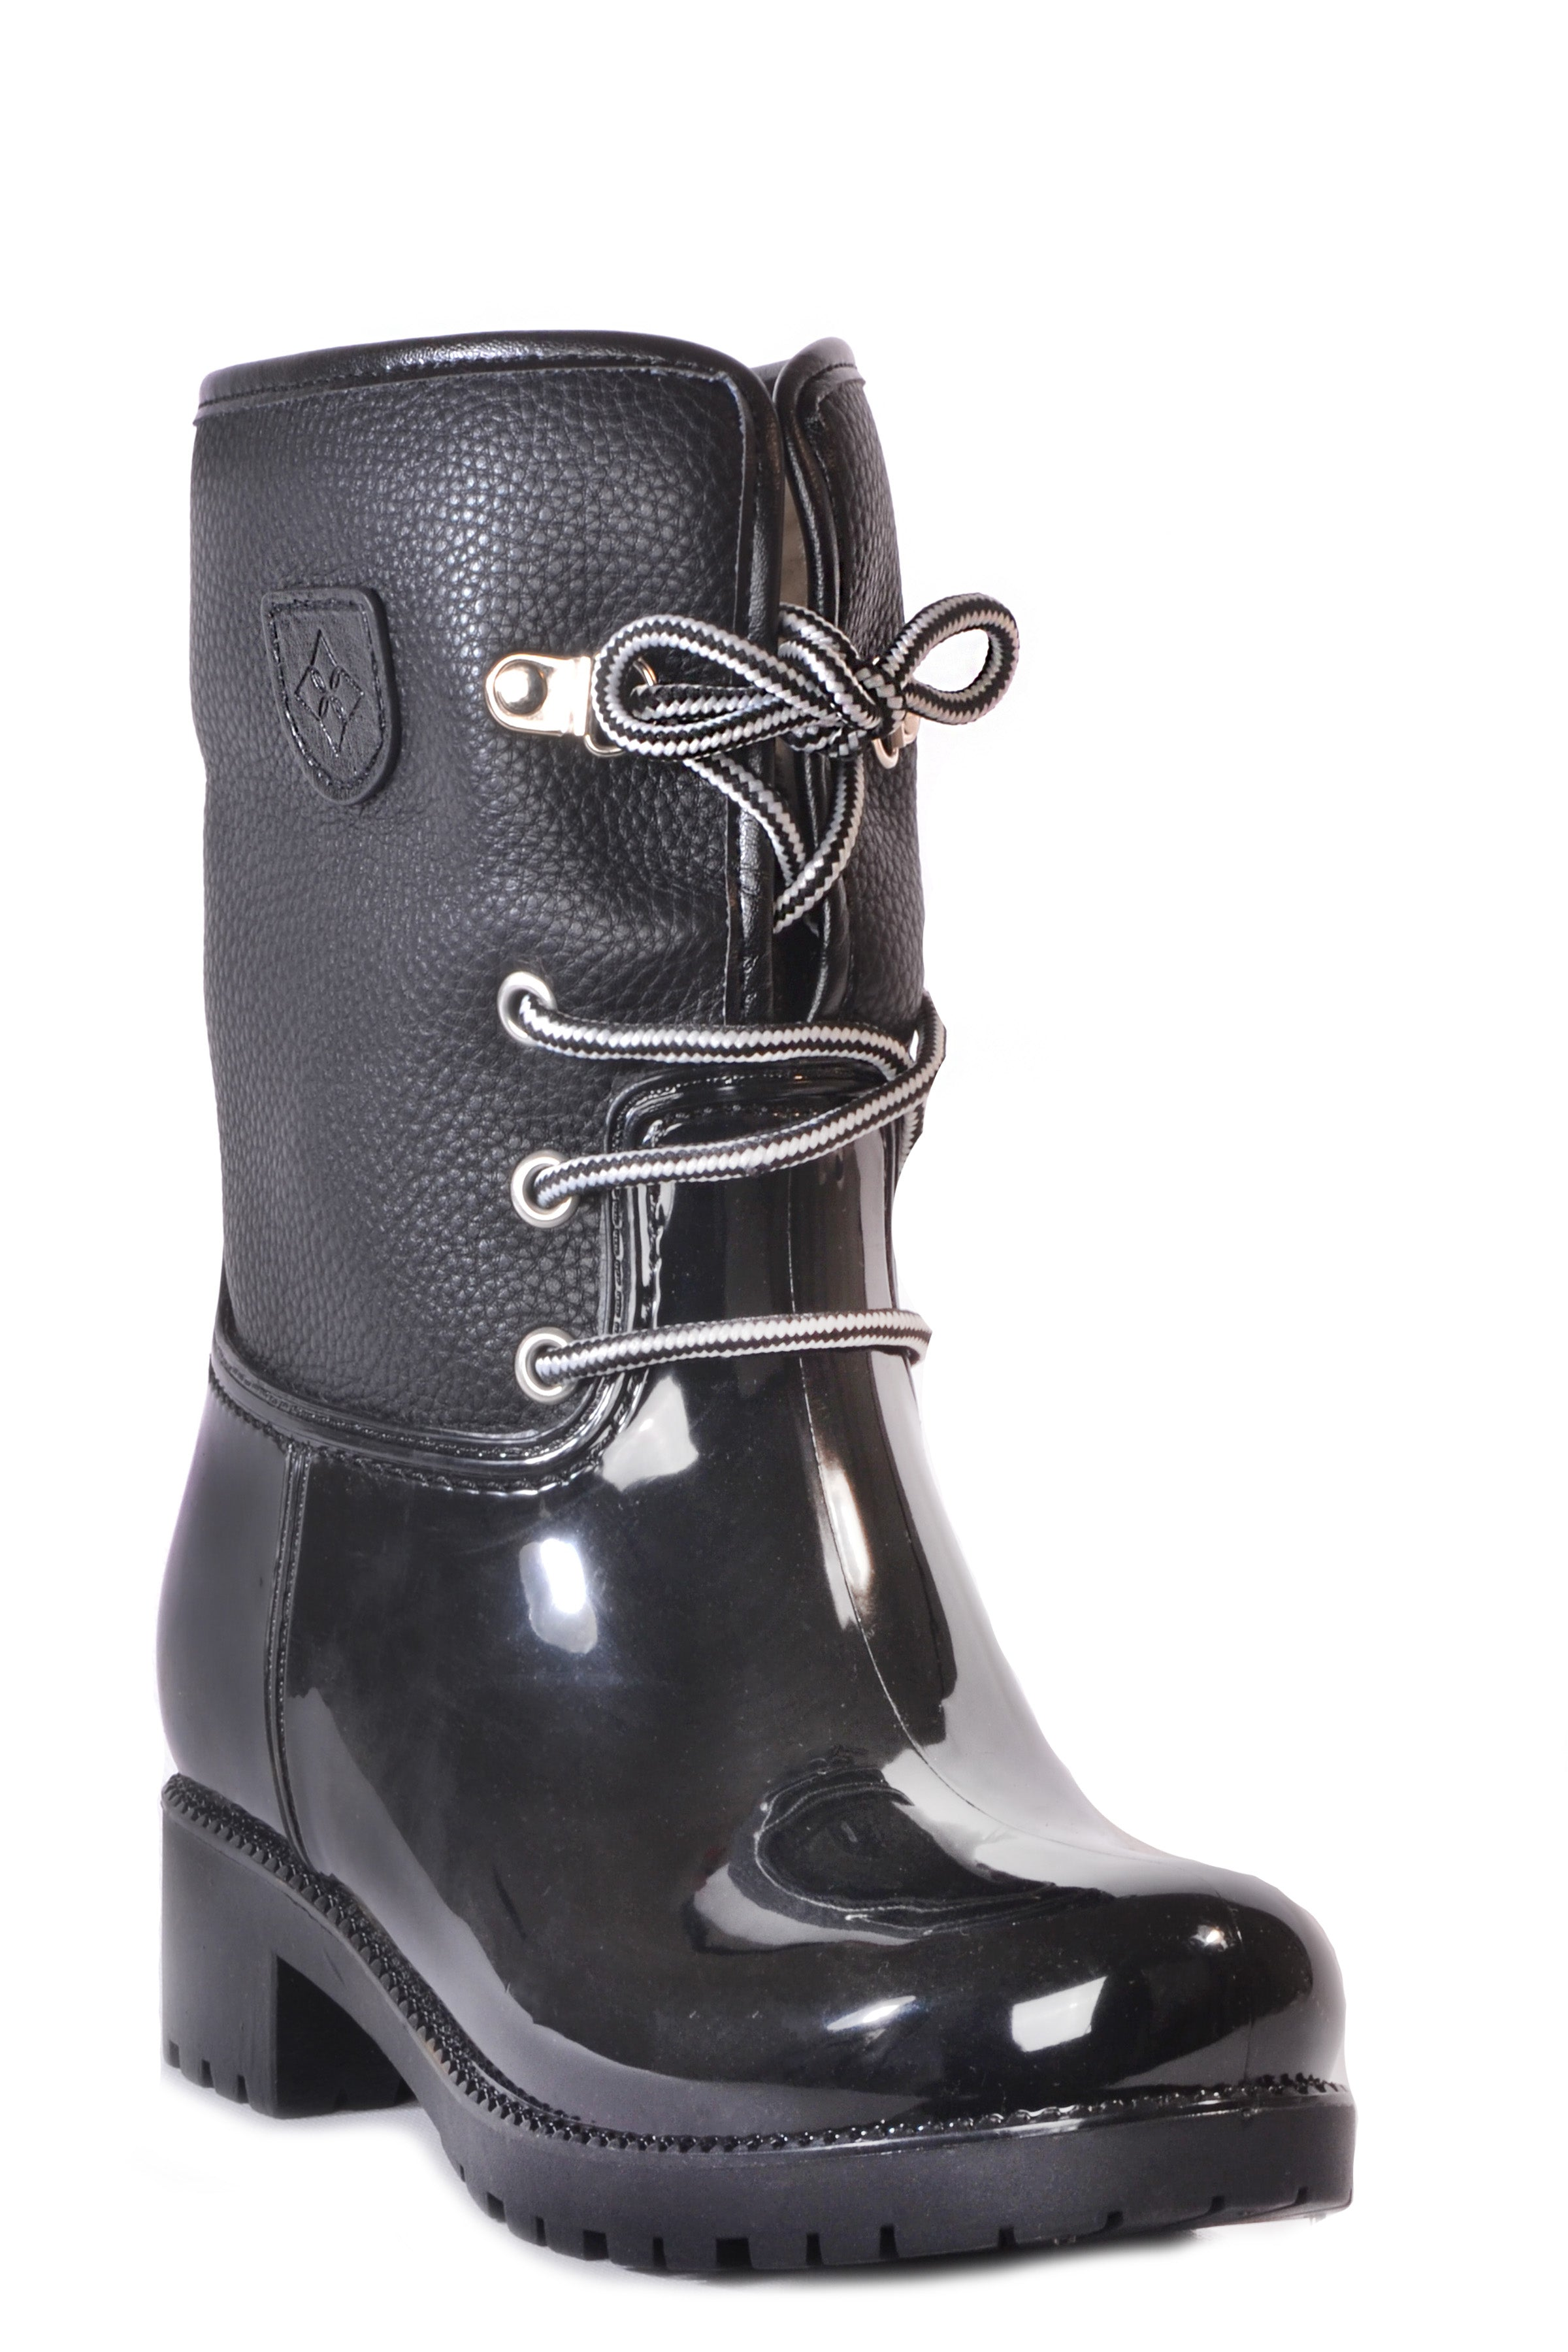 dav rain boot Calgary wear laced for sport look